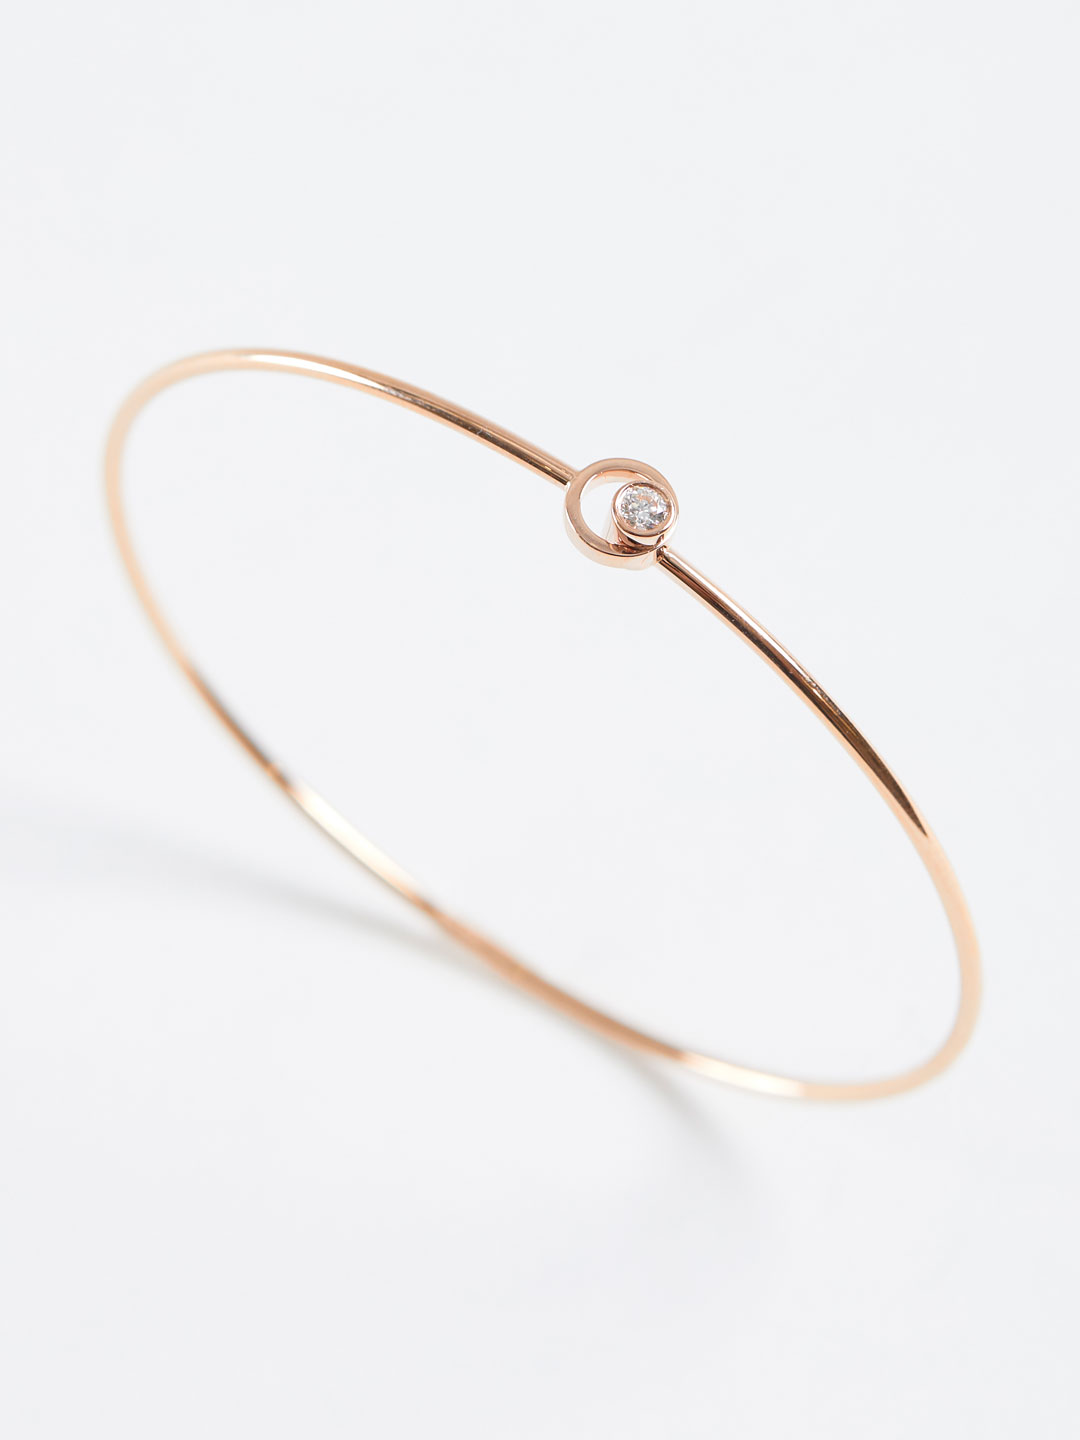 Diamond Circle Motif Bracelet - Rose Gold